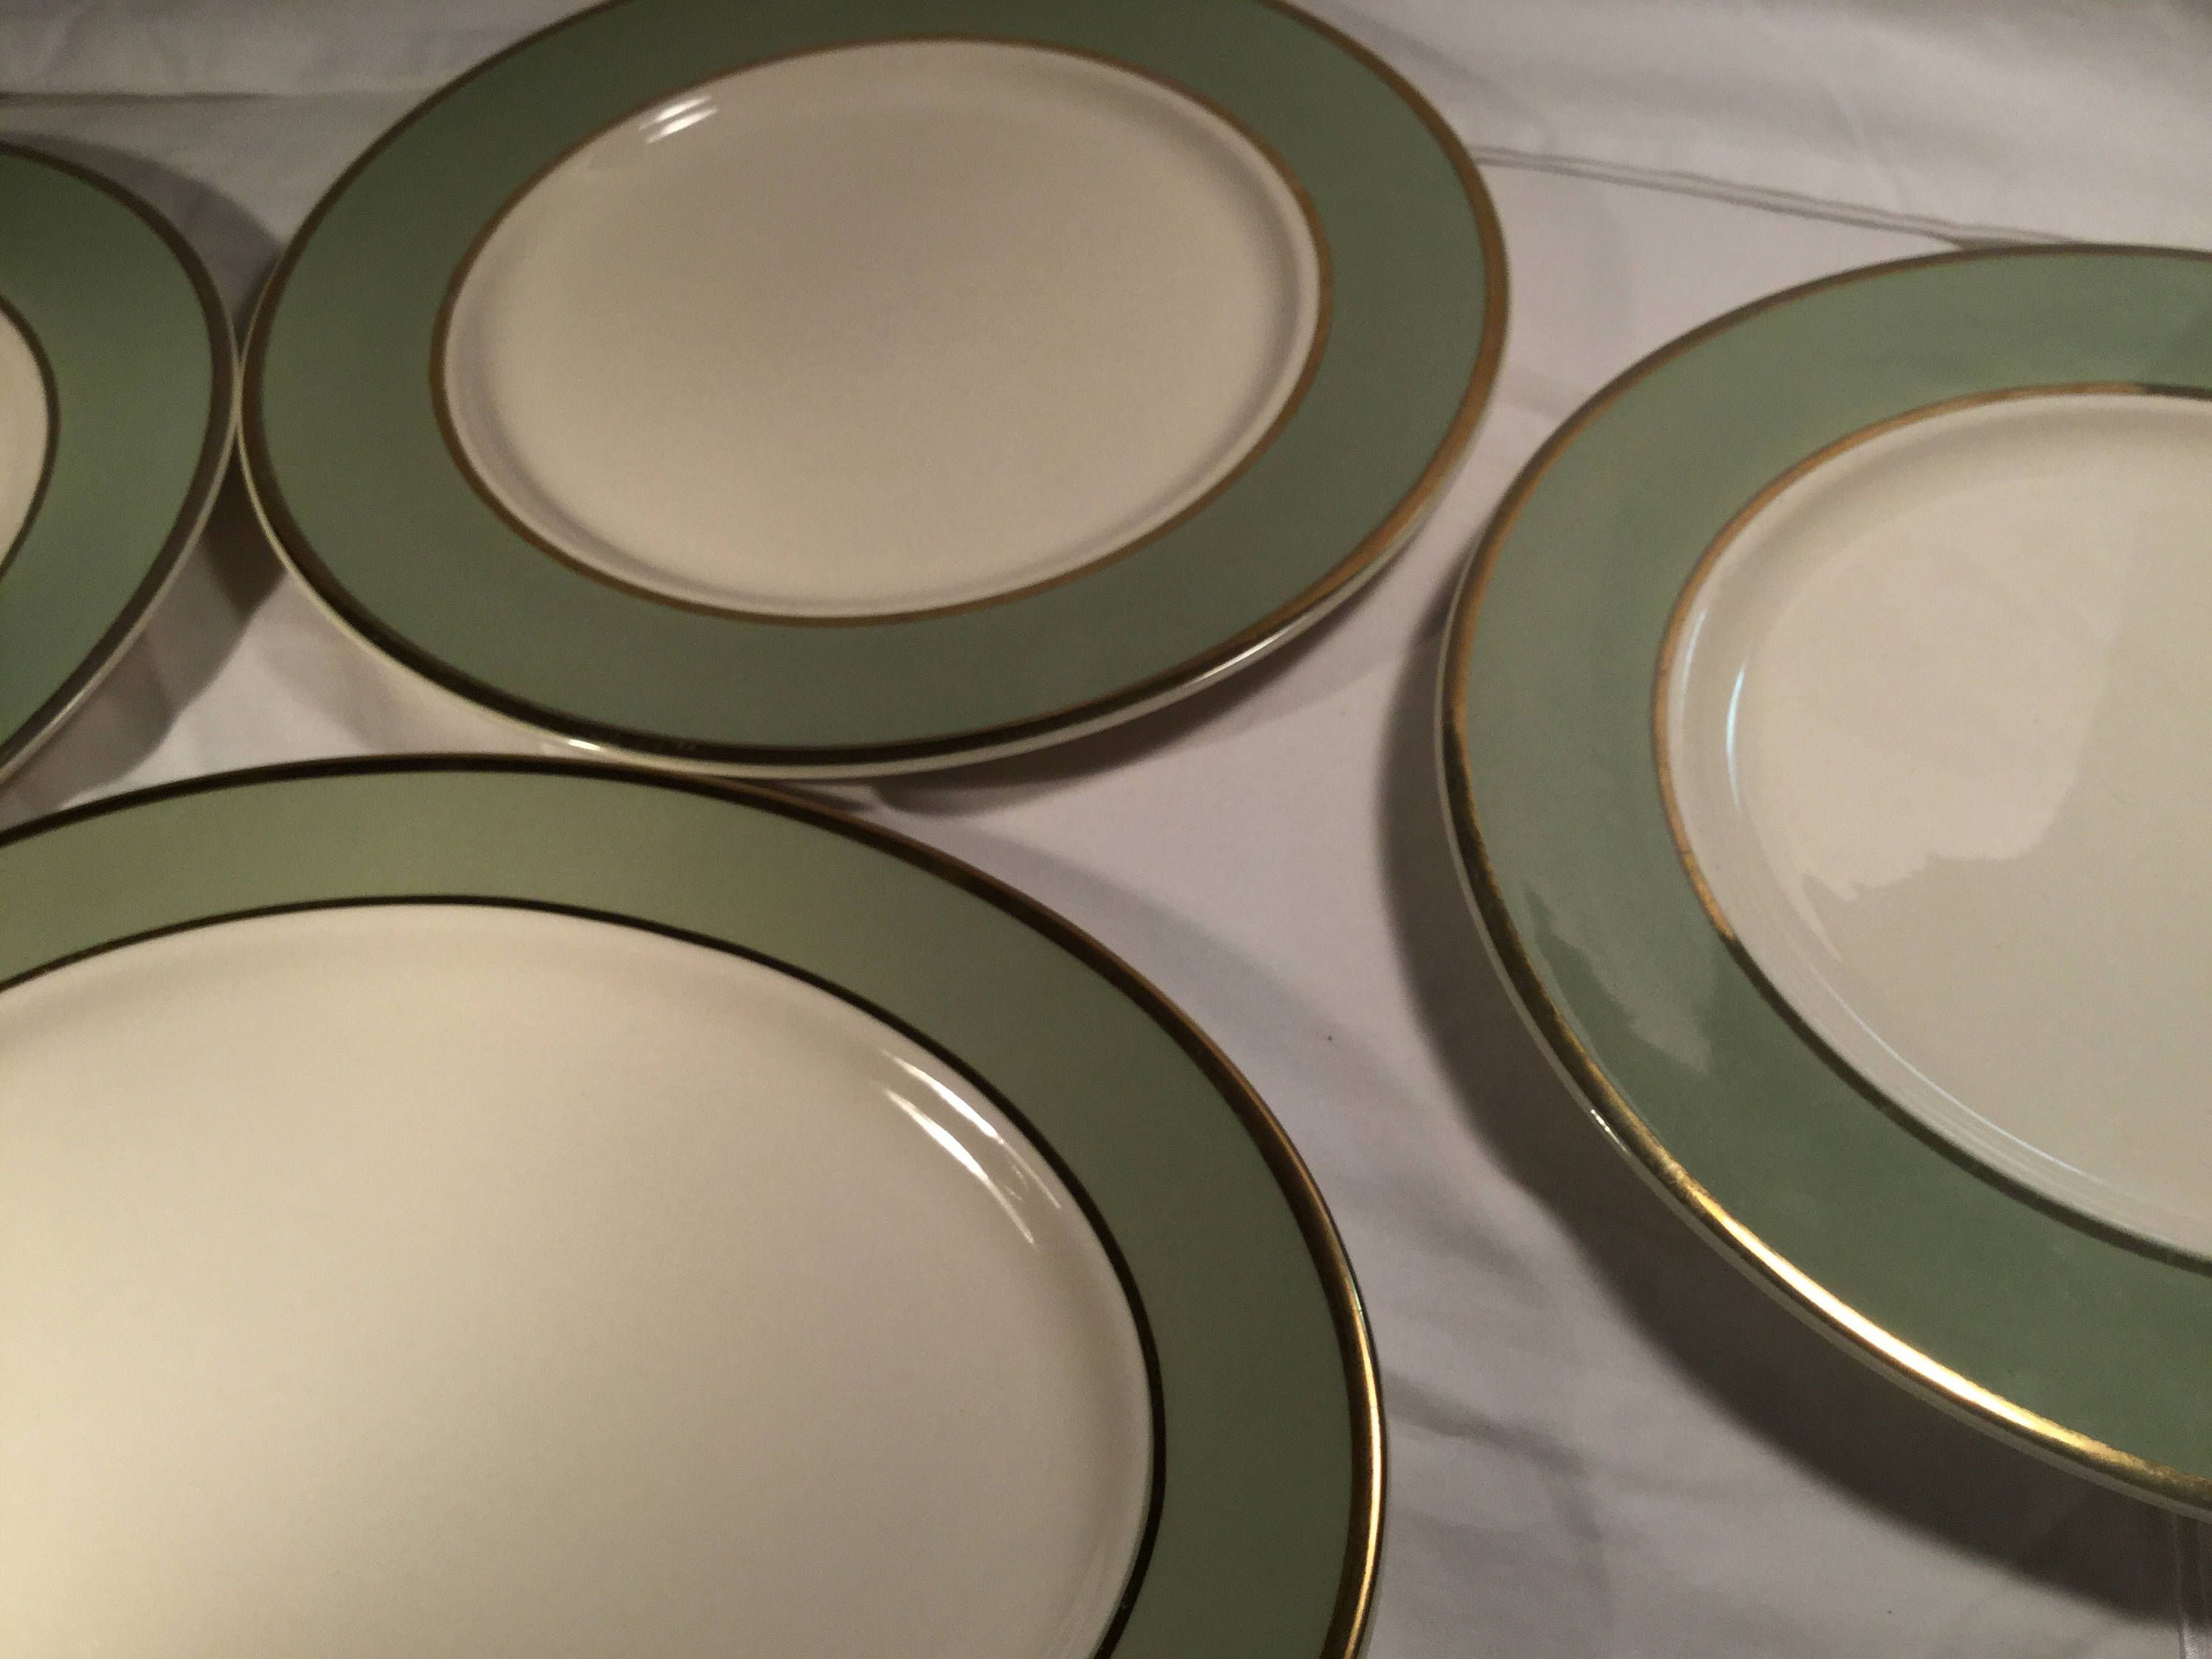 Taylor Smith Taylor Classic Heritage Celadon Green 10 1 2 Dinner Plates Set Of 4 Four By Thistakesmeback On Etsy Taylor Smith Celadon Celadon Green